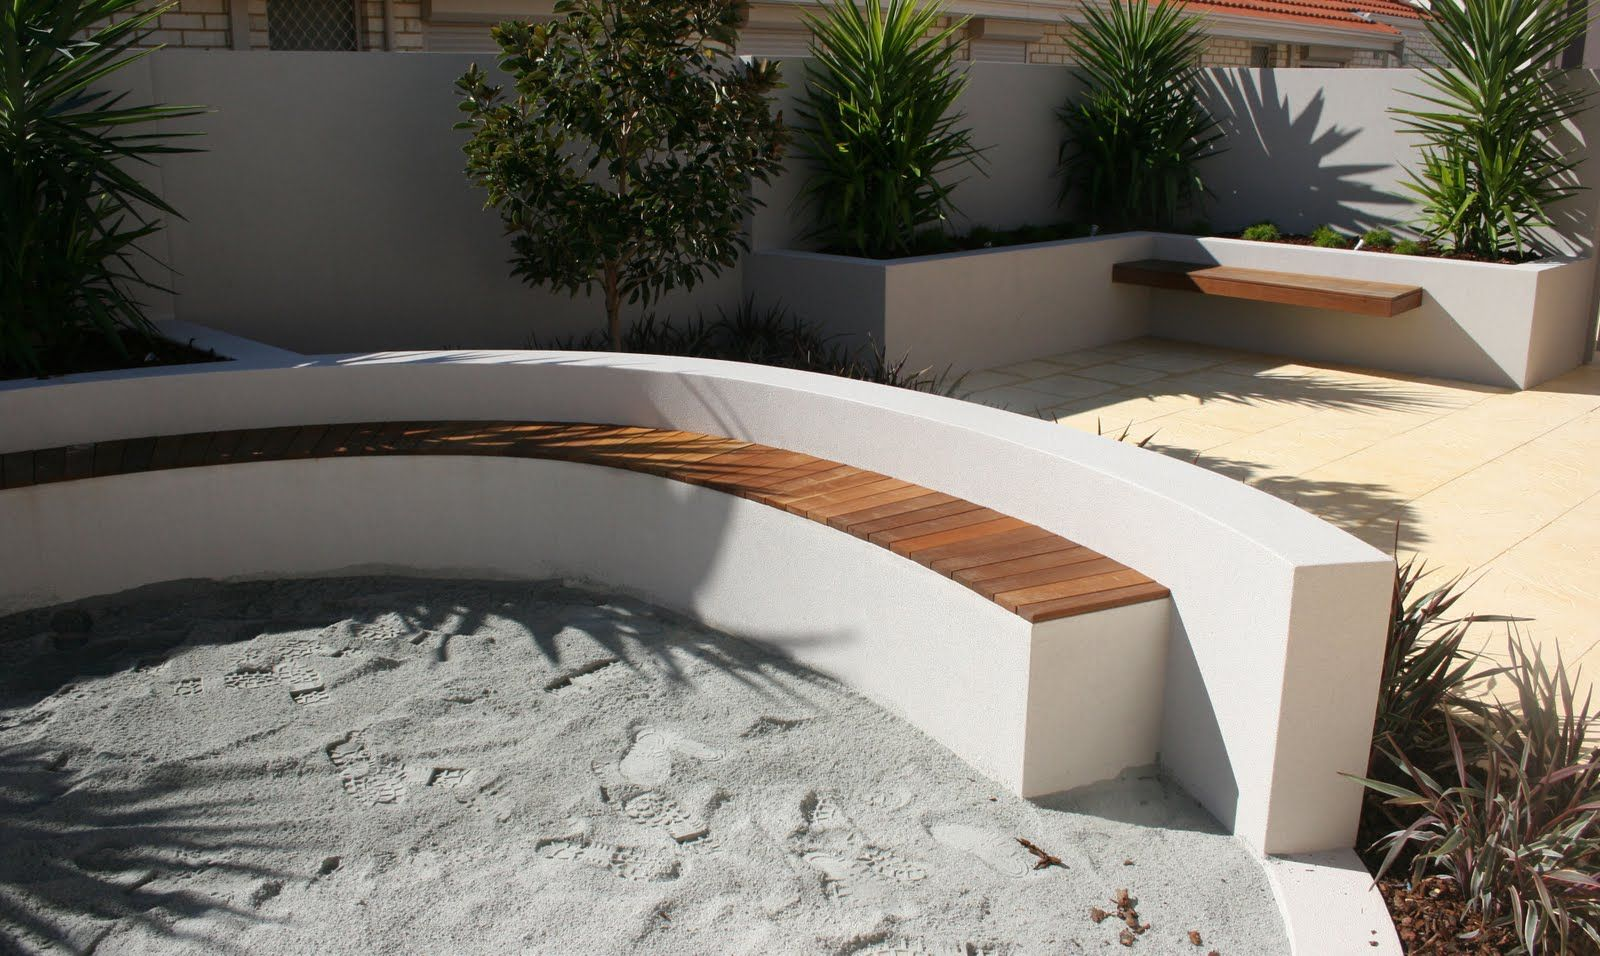 Rendered outdoor wall with seating green pinterest for Rendered garden wall designs